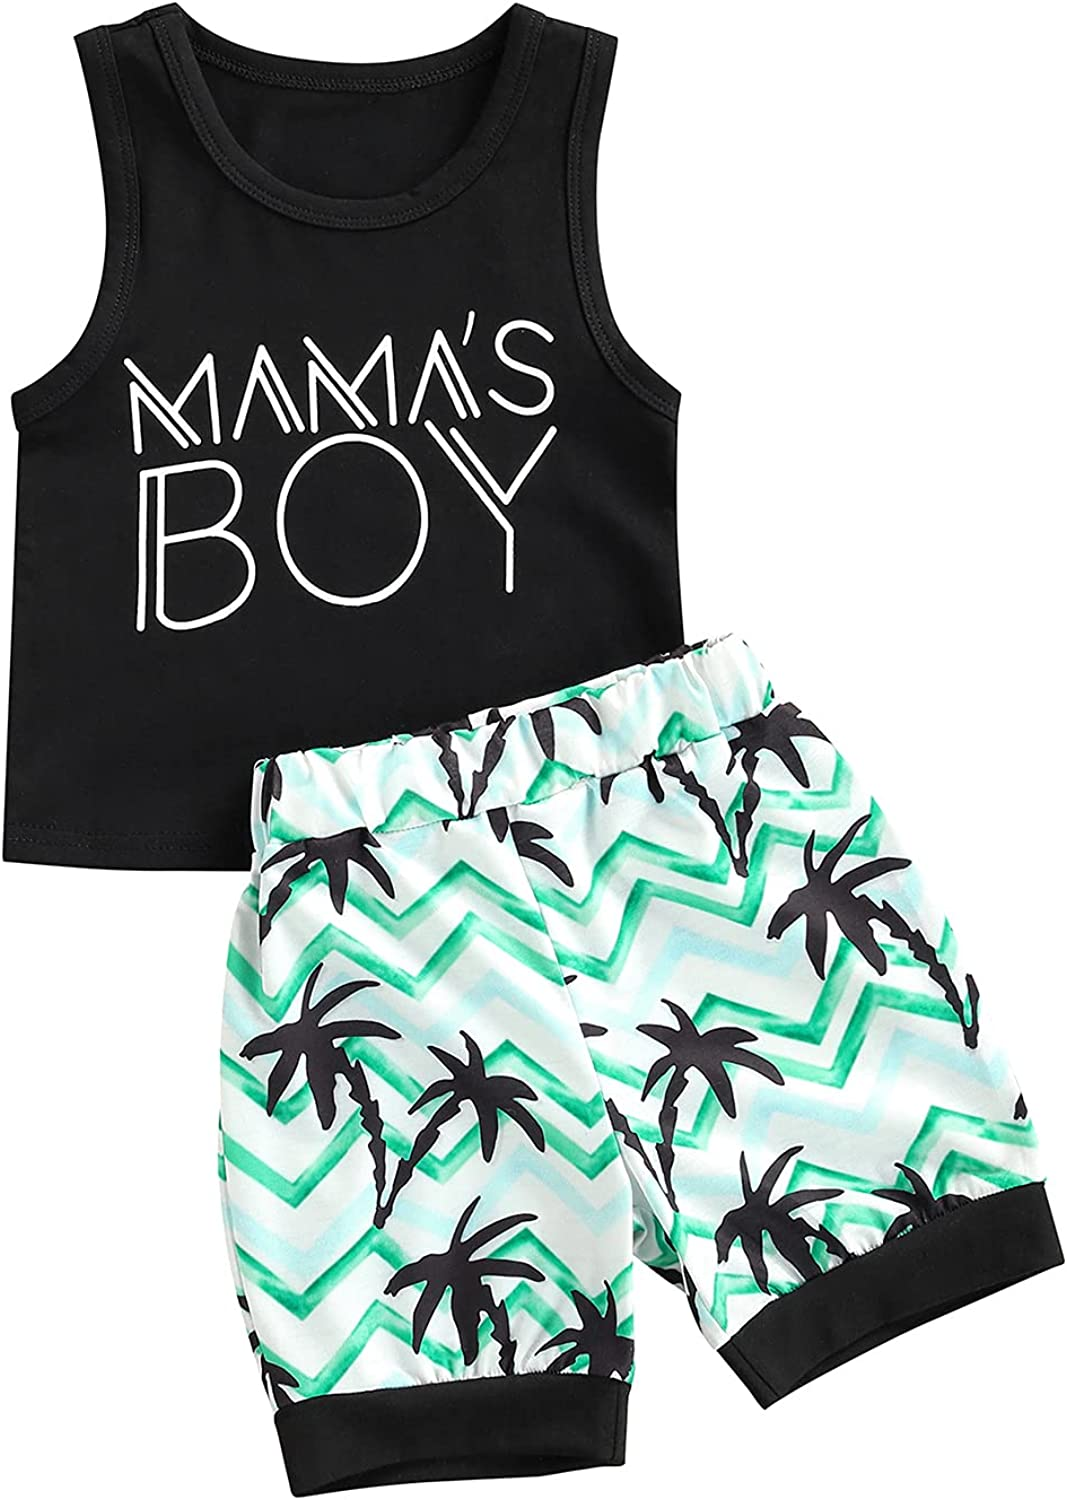 Specialtyliu Toddler Baby Boy Clothes Mama's BOY Sleeveless Tank Top Palm Printed Short Pant Summer Outfit